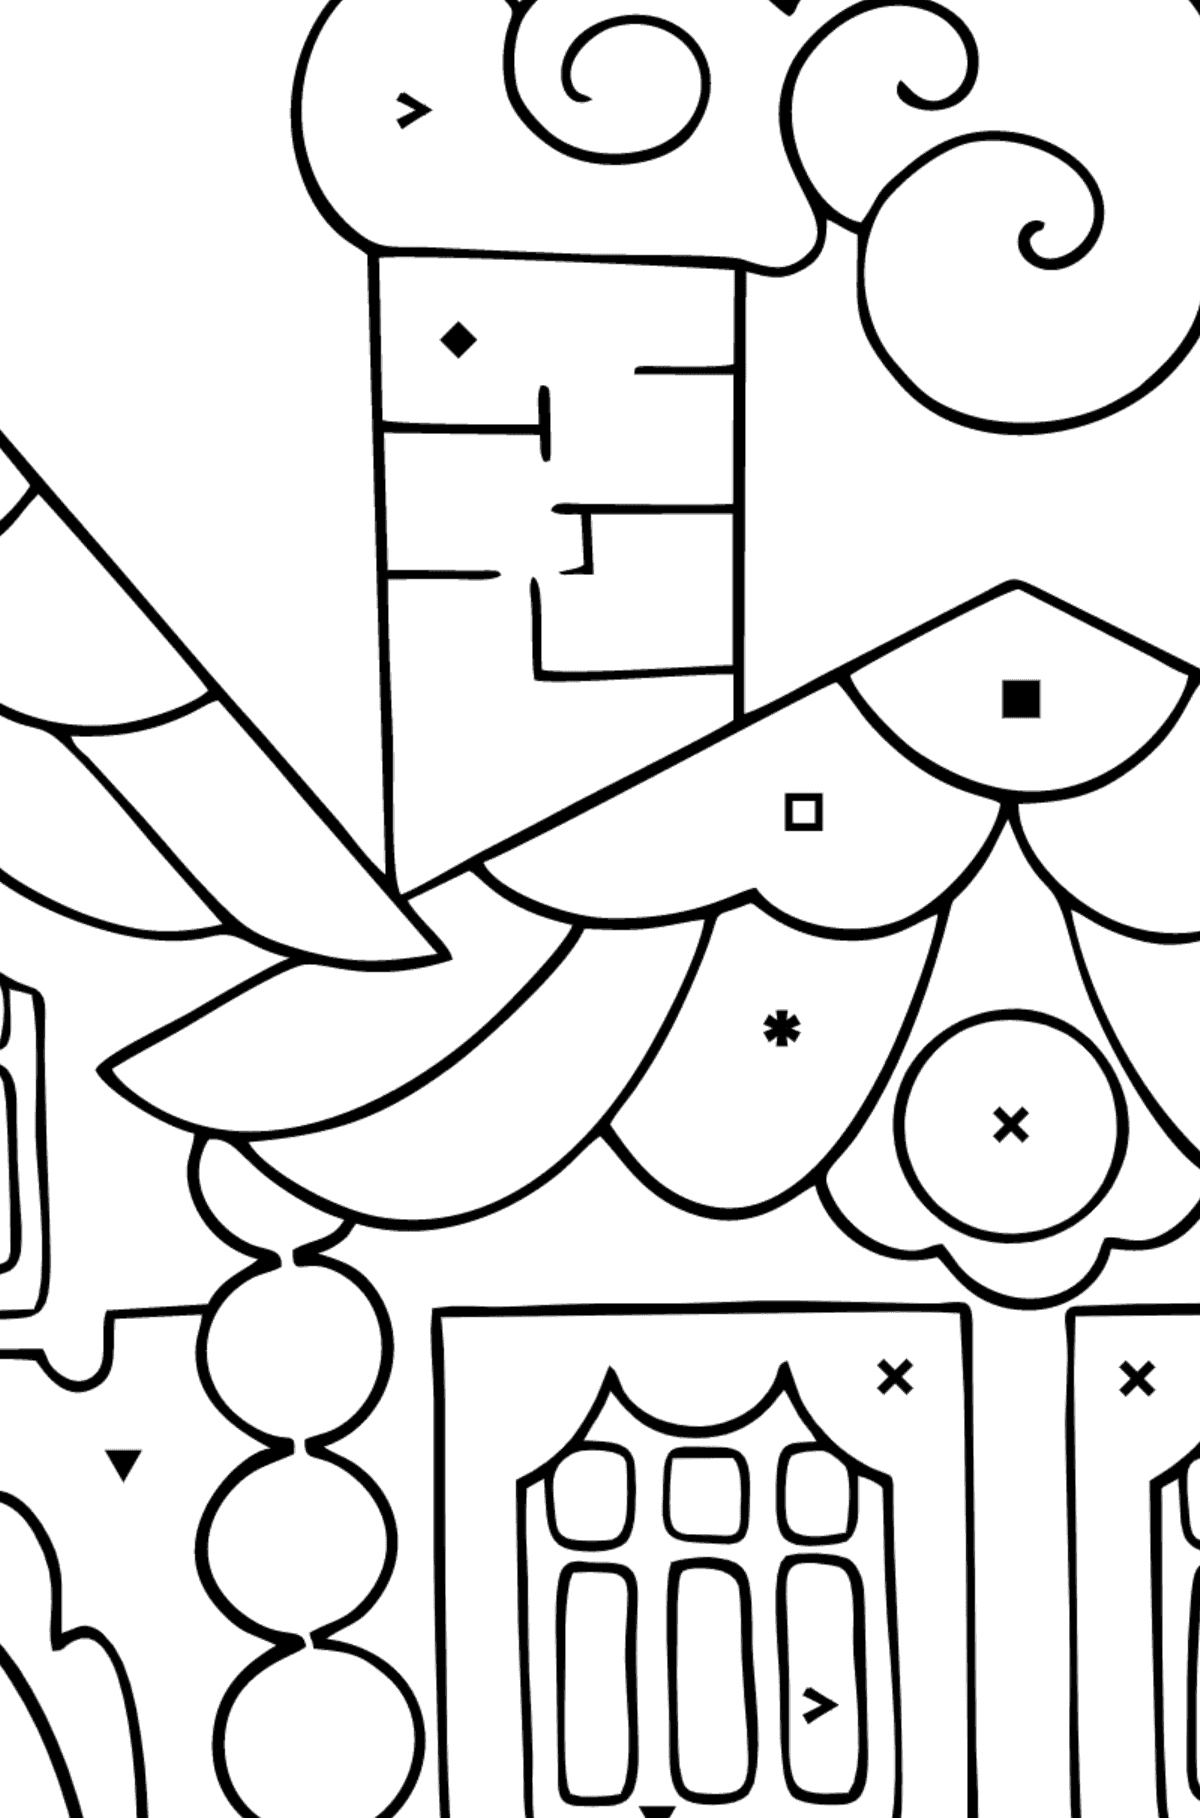 Coloring Page - A House in the Forest for Children  - Color by Special Symbols